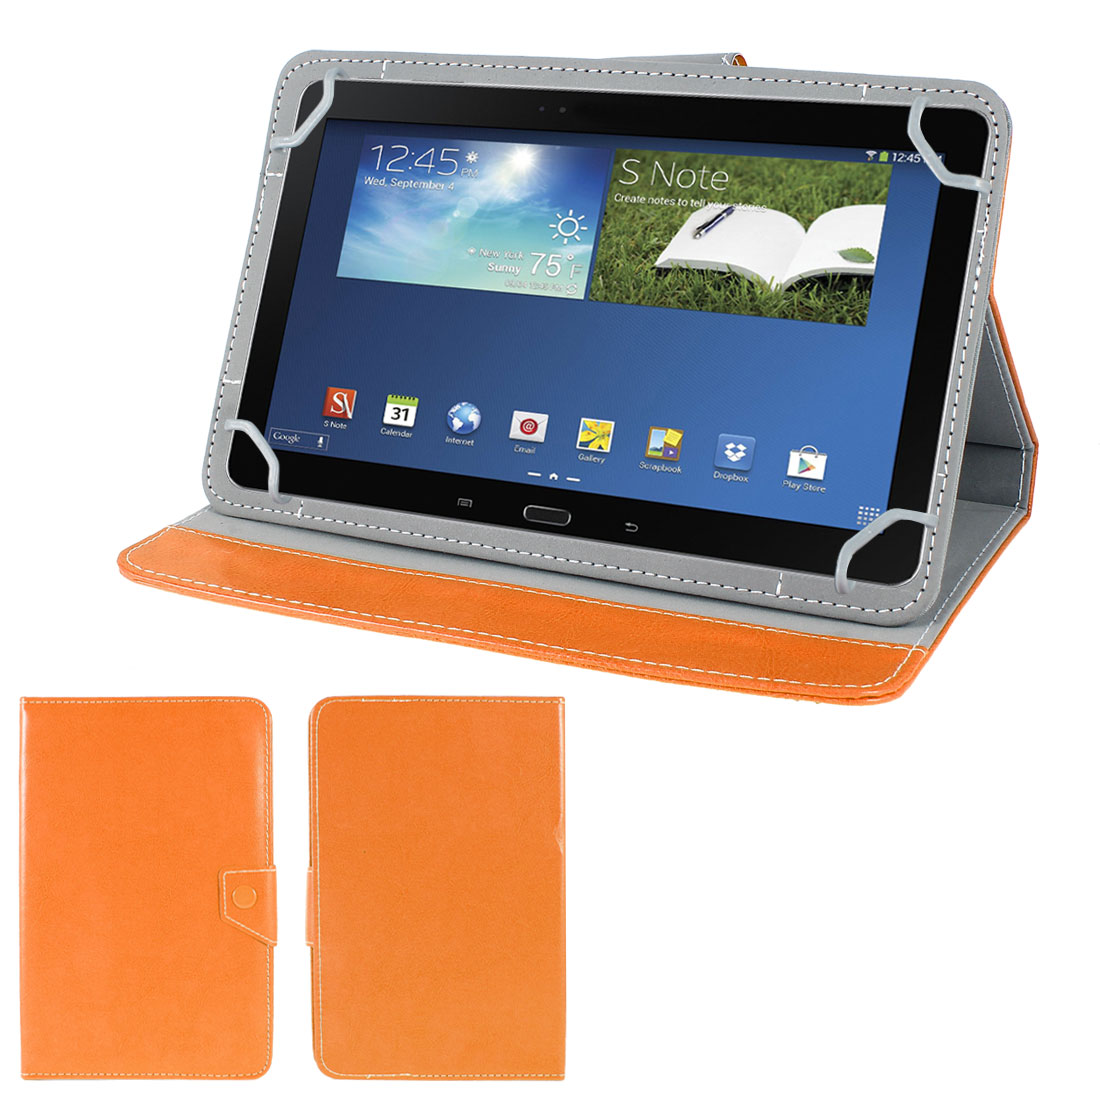 PC Orange PU Leather Folio Case Cover Stand for Kindle Fire HDX 8.9